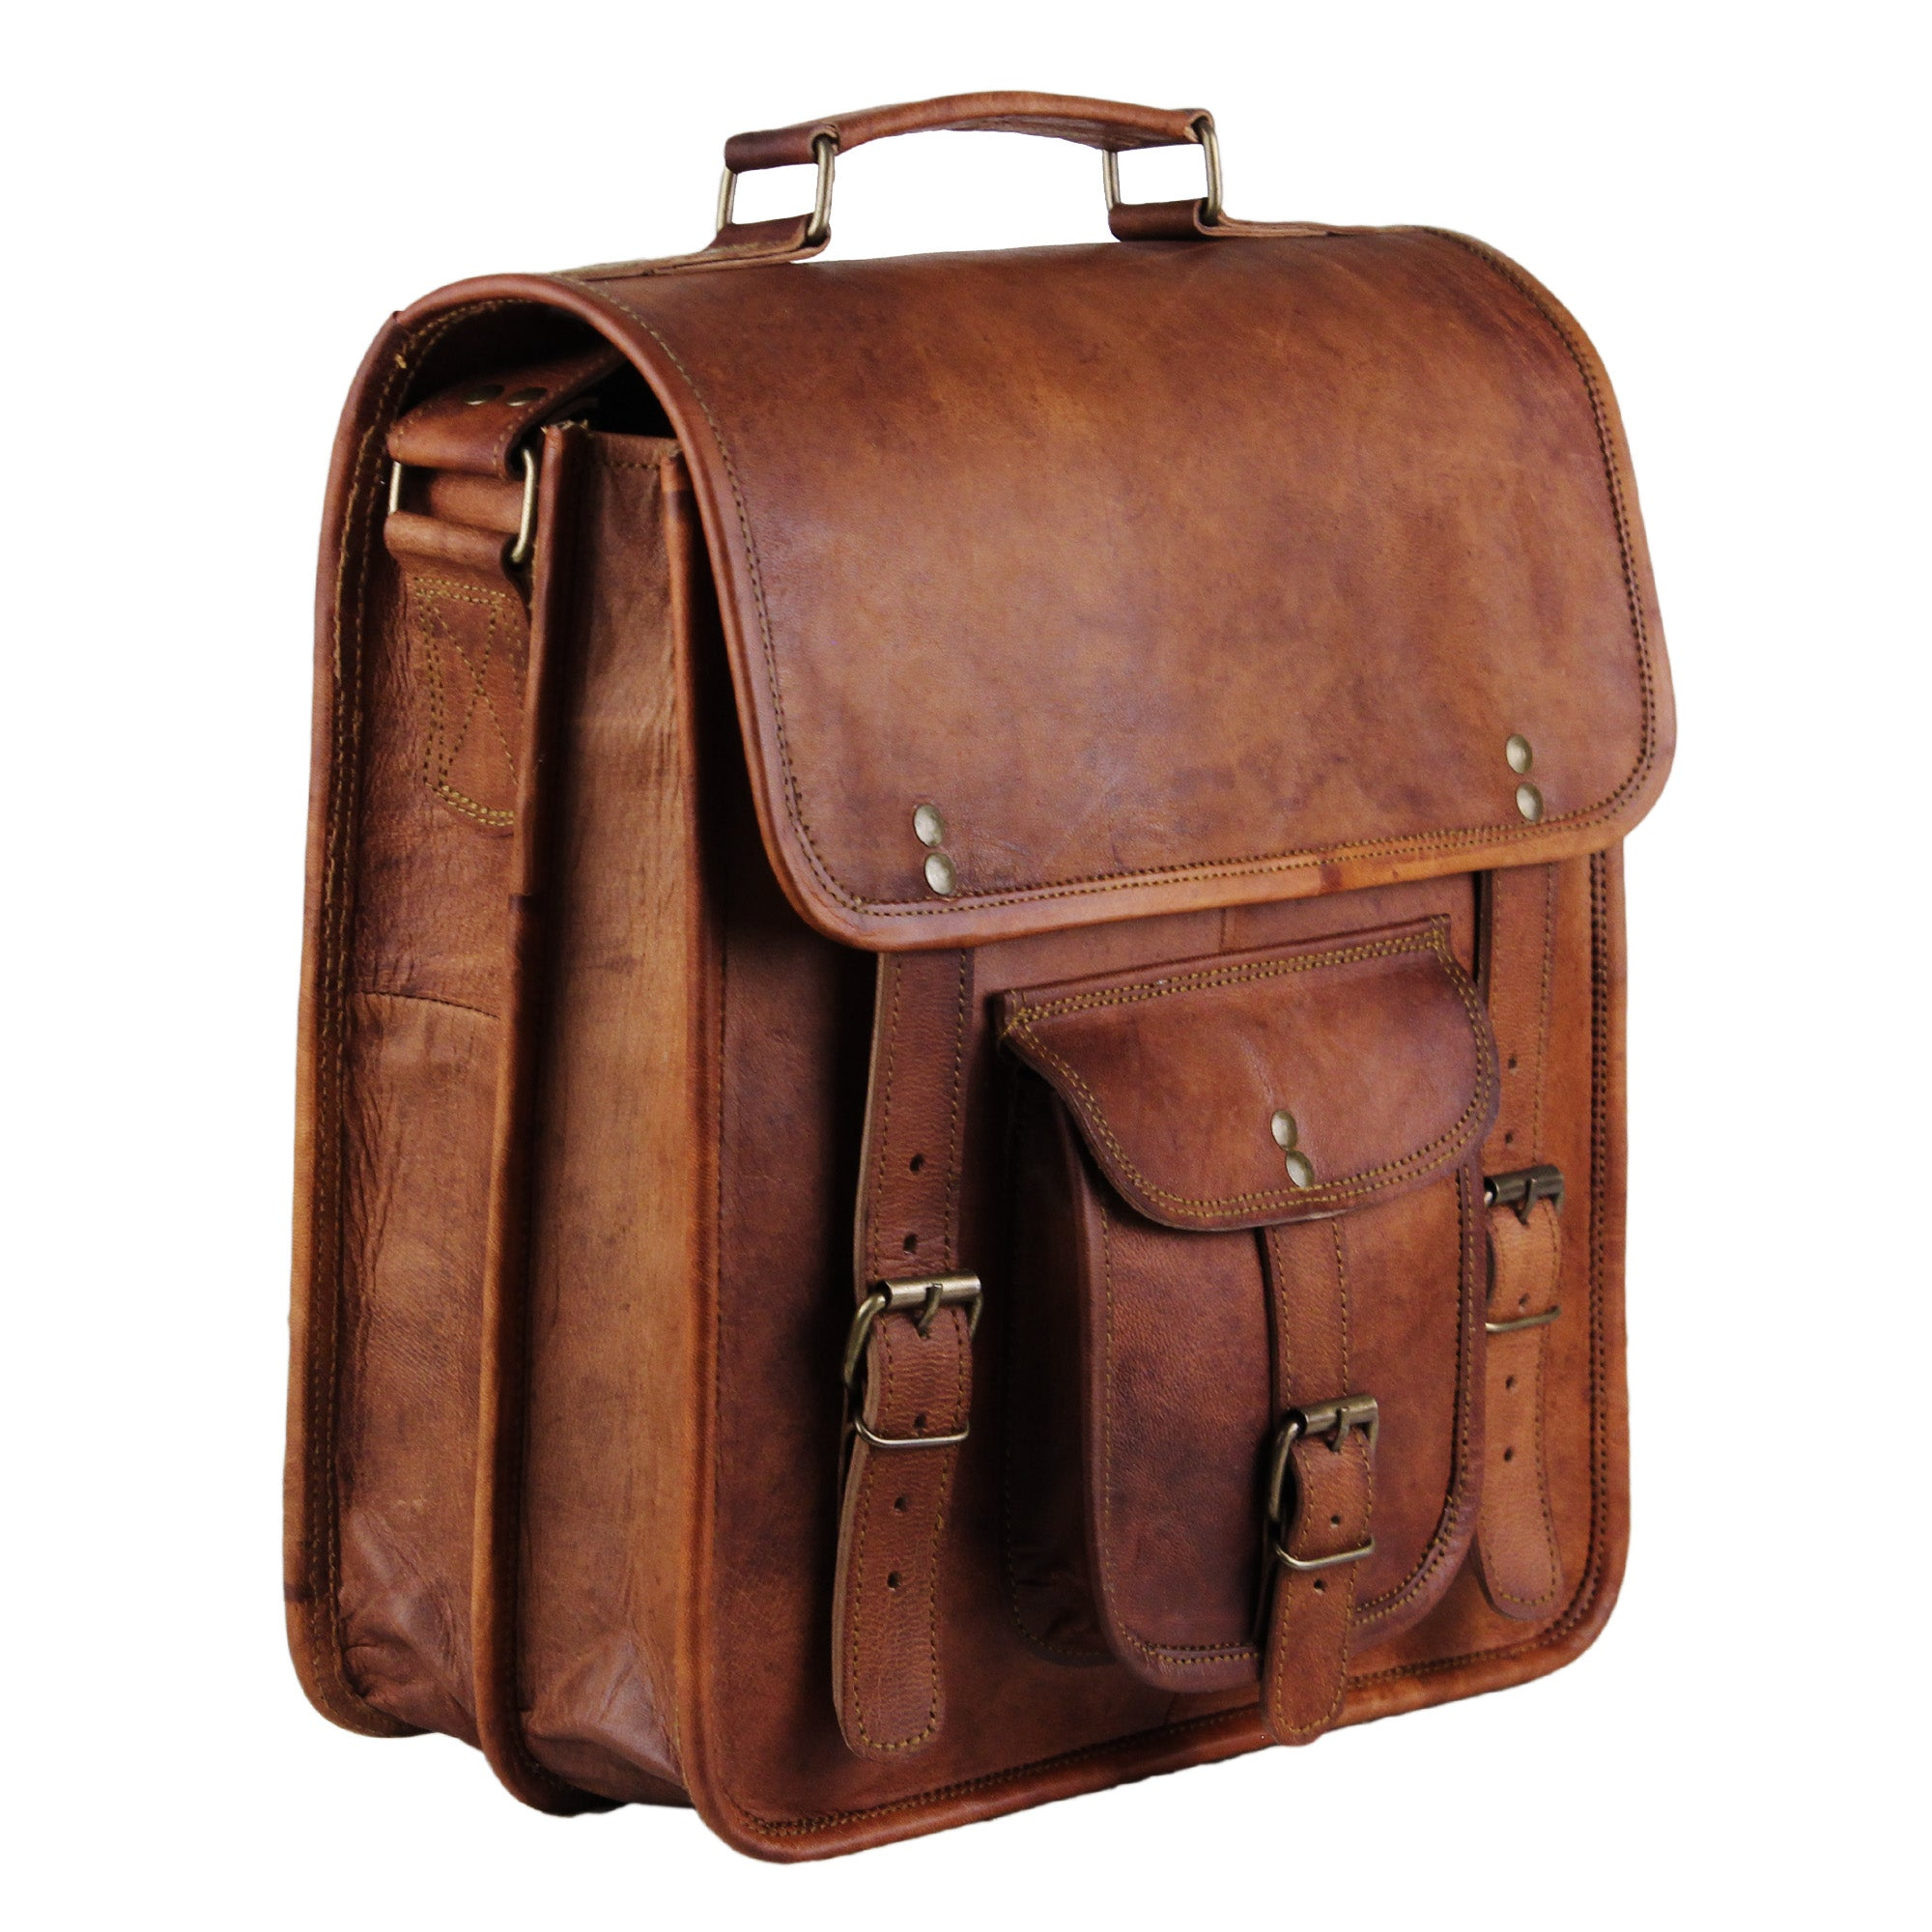 Full Grain Large Leather Brown Rustic Messenger Laptop Bag with Top Handle